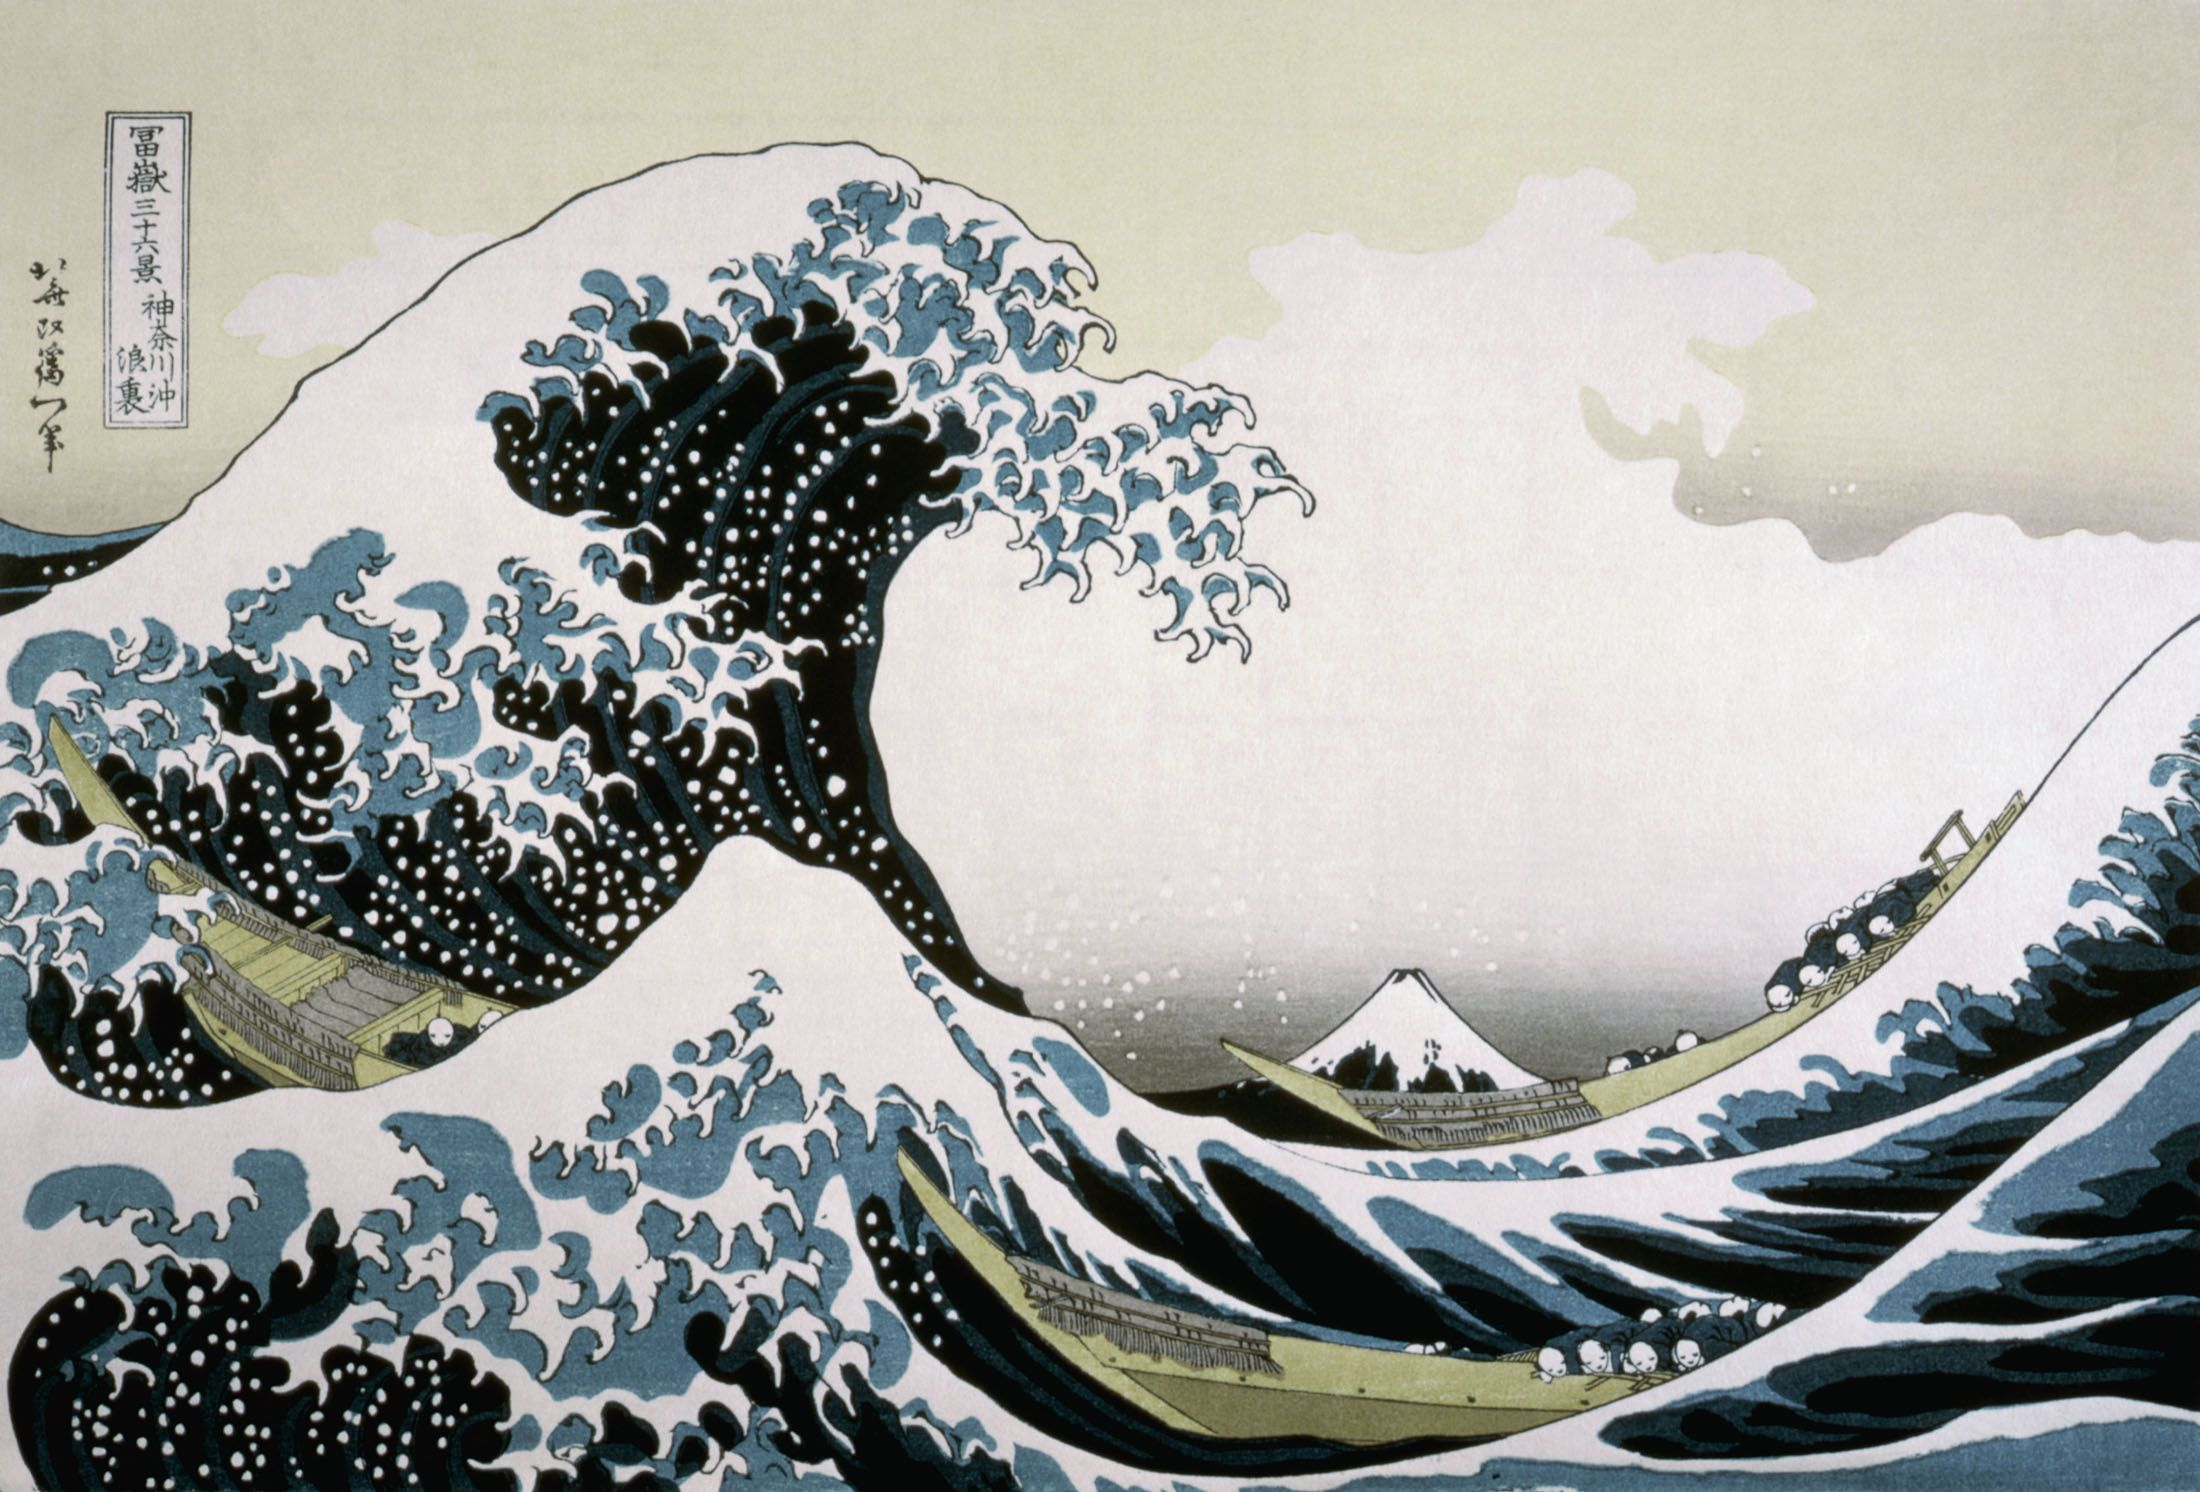 chinese wave drawing Wave drawing, Waves wallpaper, Wave art